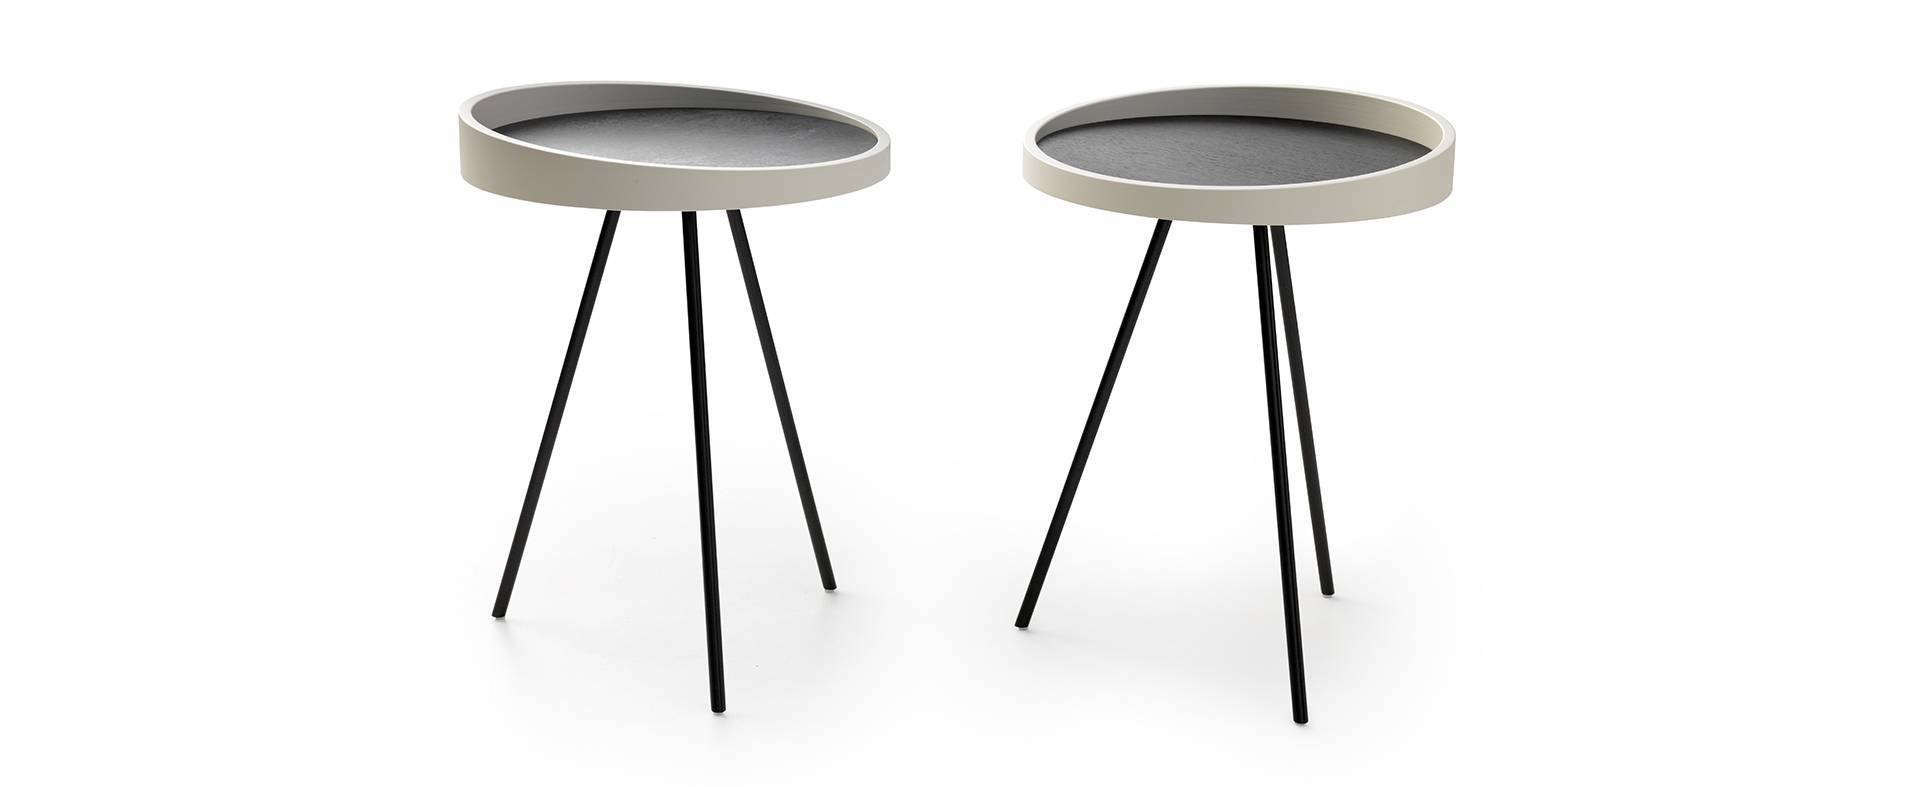 Canna Design Salon Table Leolux De rBWCxoeQd